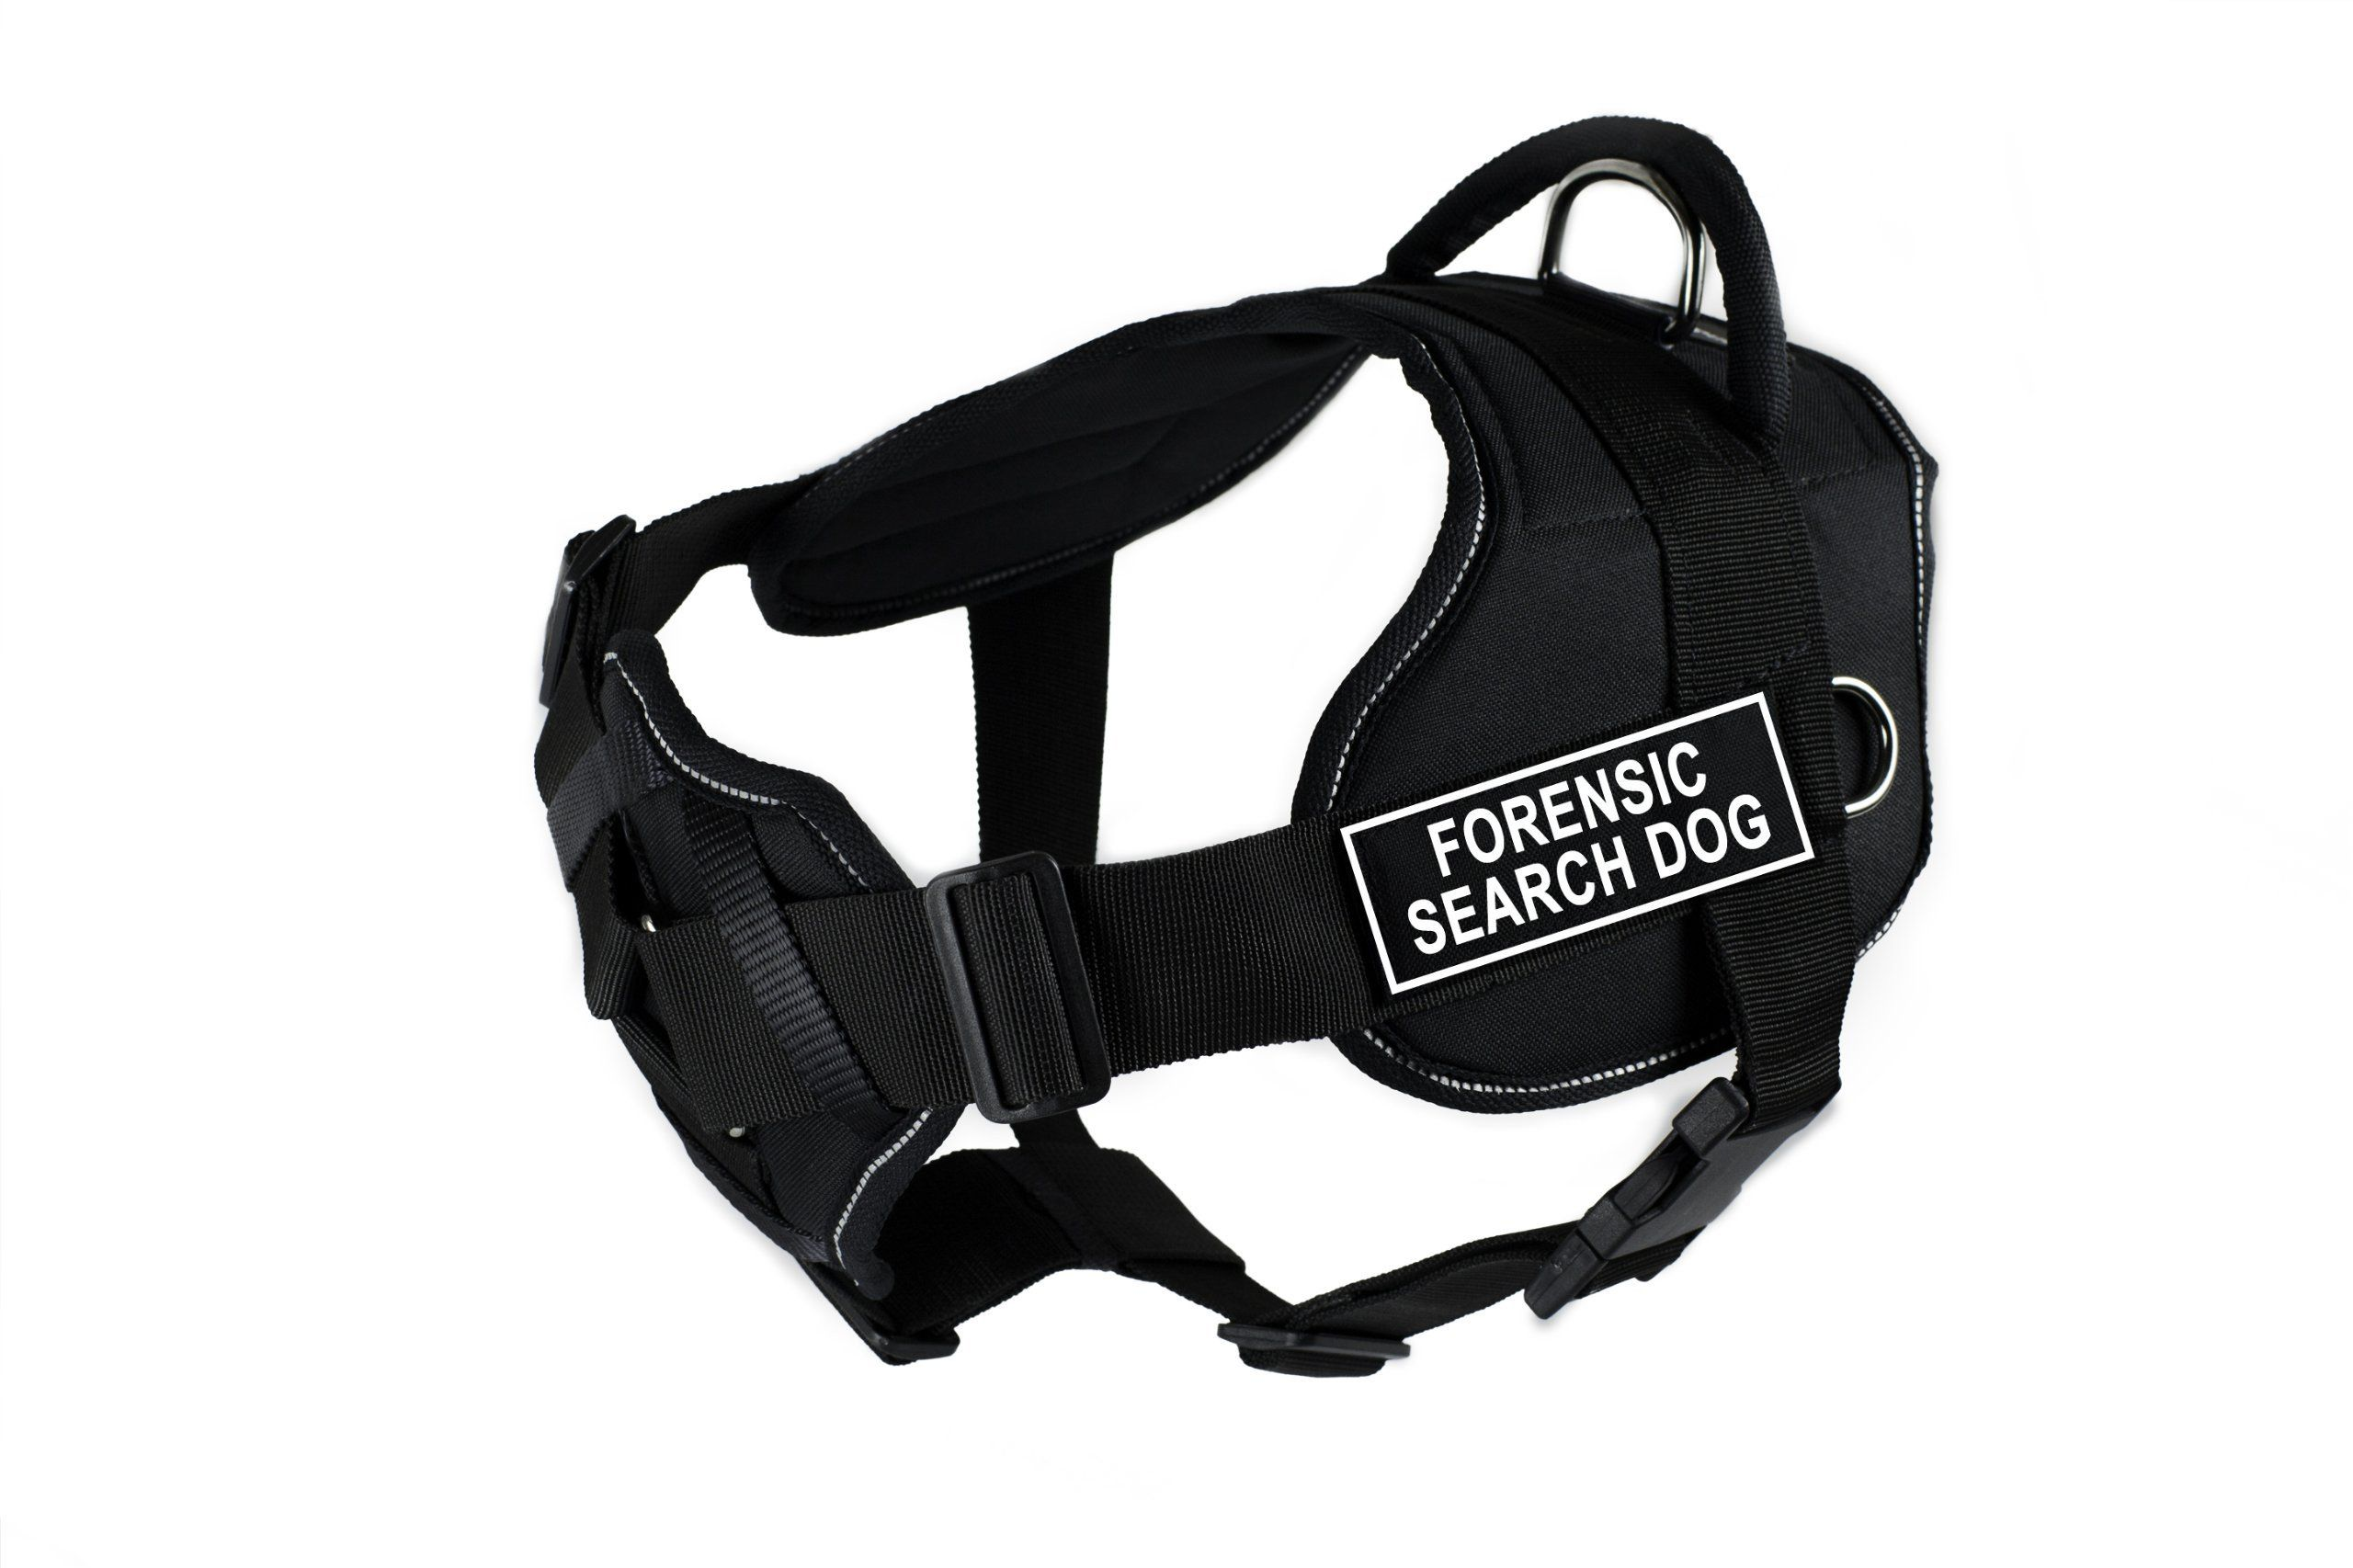 Dean & Tyler Fun Works Forensic Search Dog Harness with Padded Chest Piece Medium Fits Girth Size: 28-Inch to 34-Inch Black with Reflective Trim